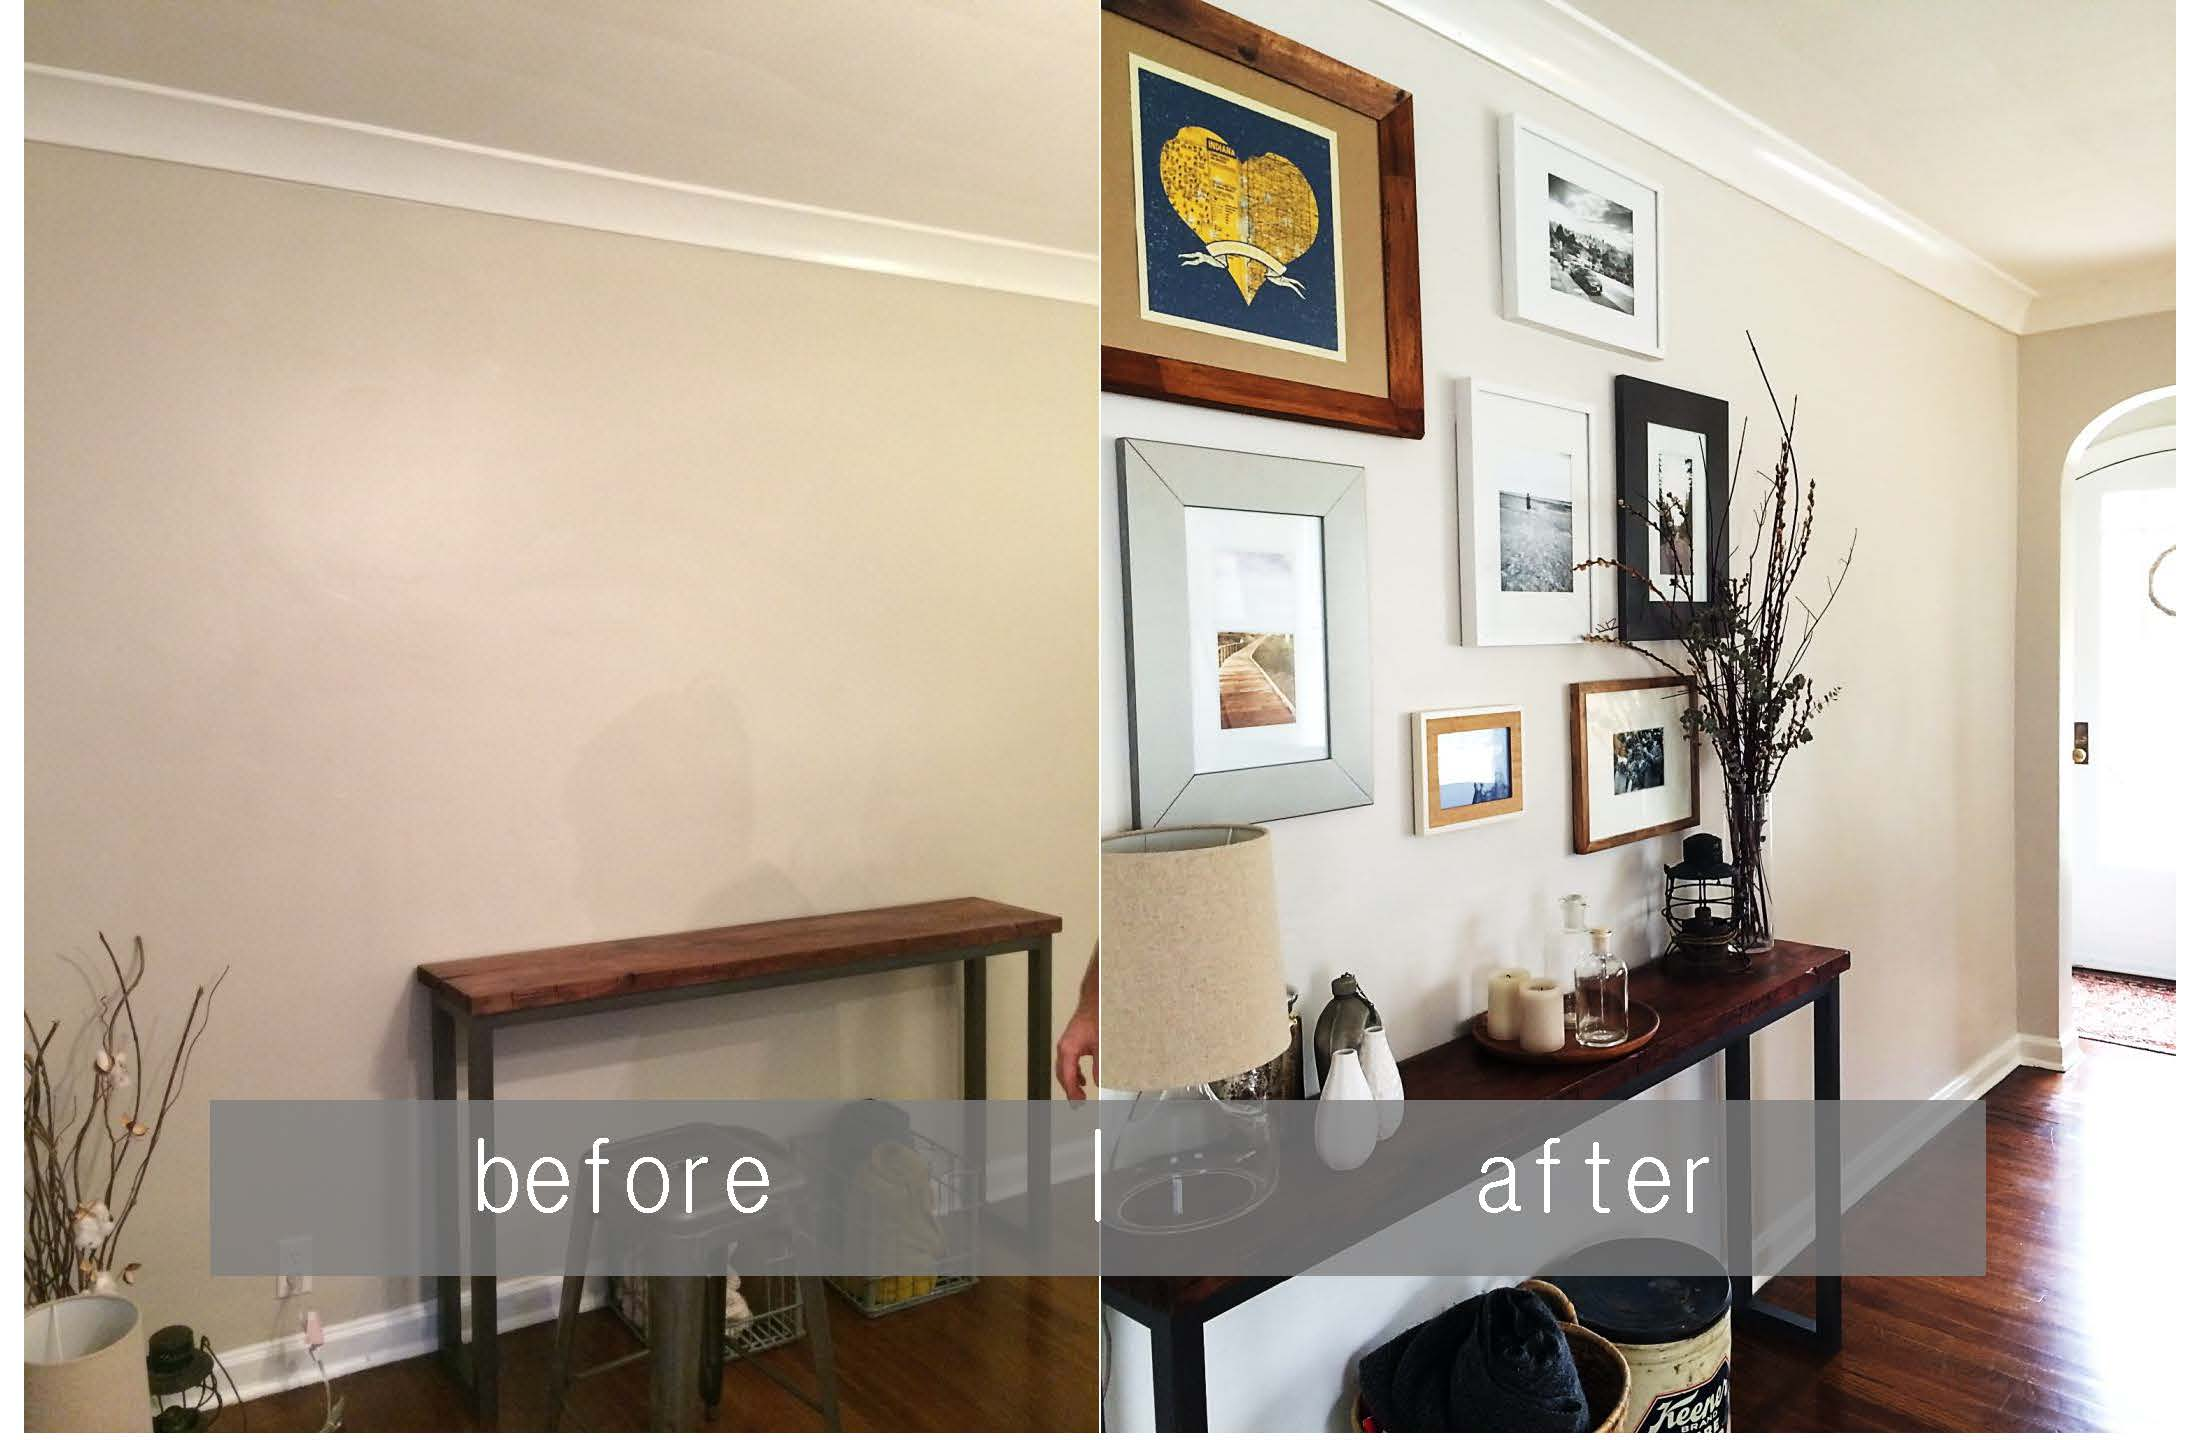 Jolly Paint Pale Oak Win My Simply Pale Oak Benjamin Moore Reviews Pale Oak Benjamin Moore Pinterest houzz 01 Pale Oak Benjamin Moore